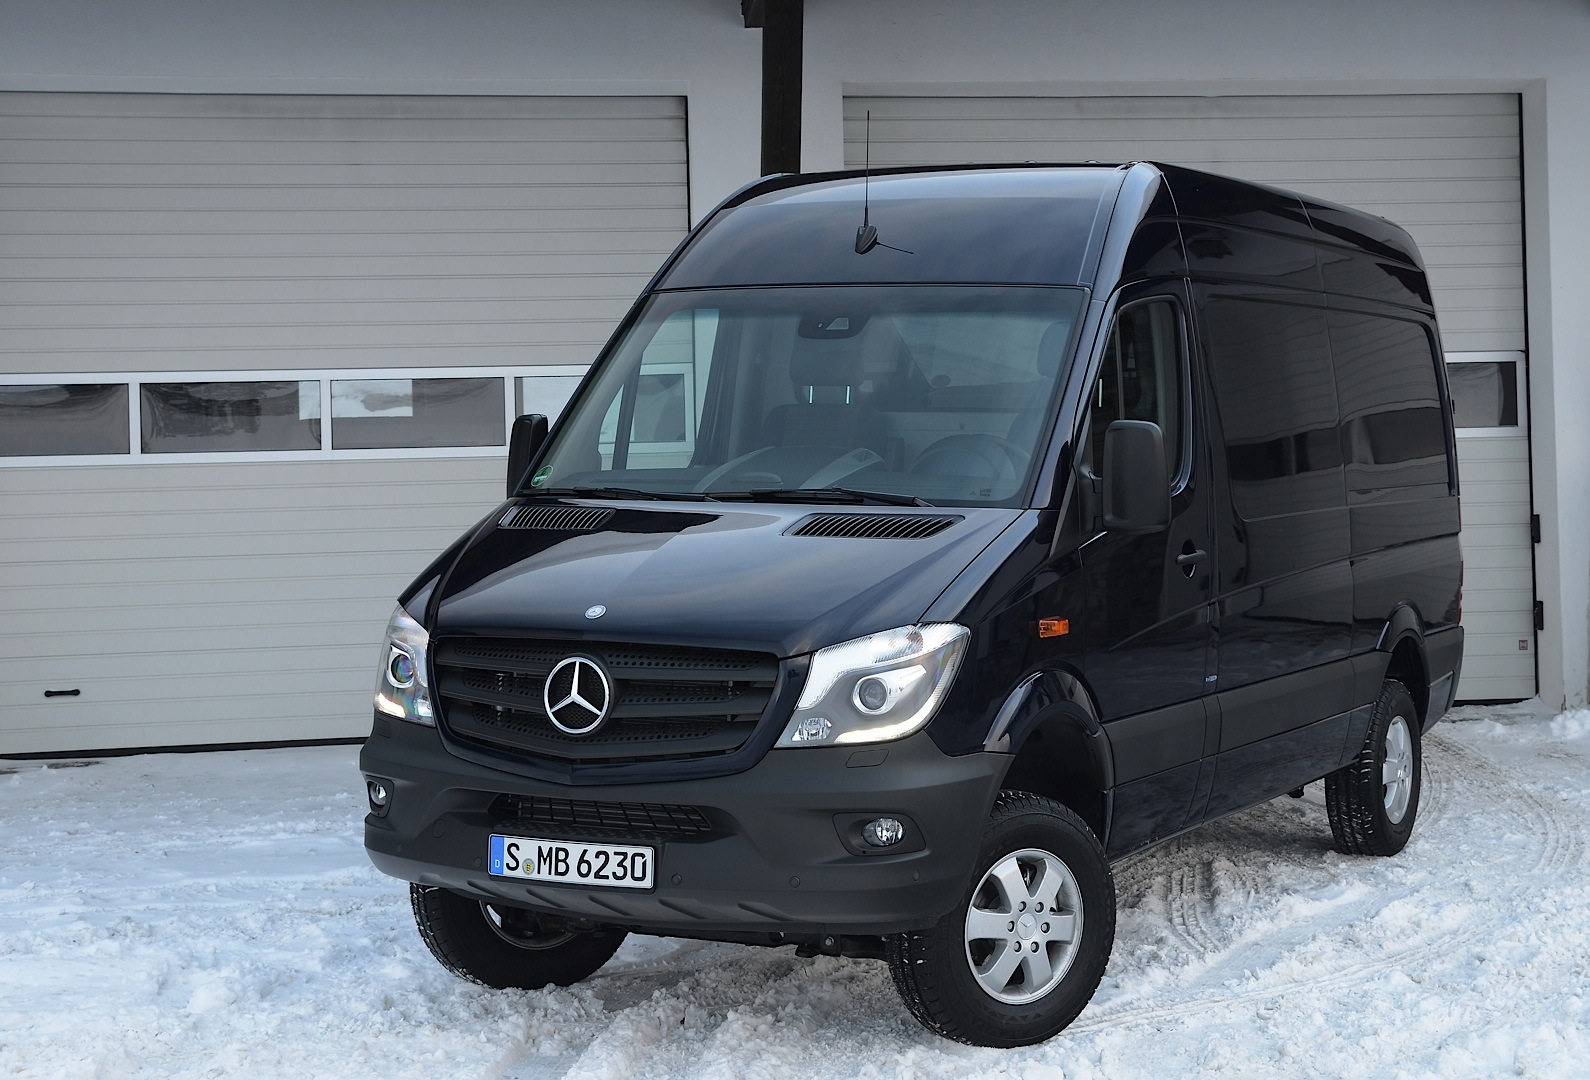 Nissan 370z For Sale >> Mercedes-Benz Sprinter 4x4 is on Its Way to The United ...